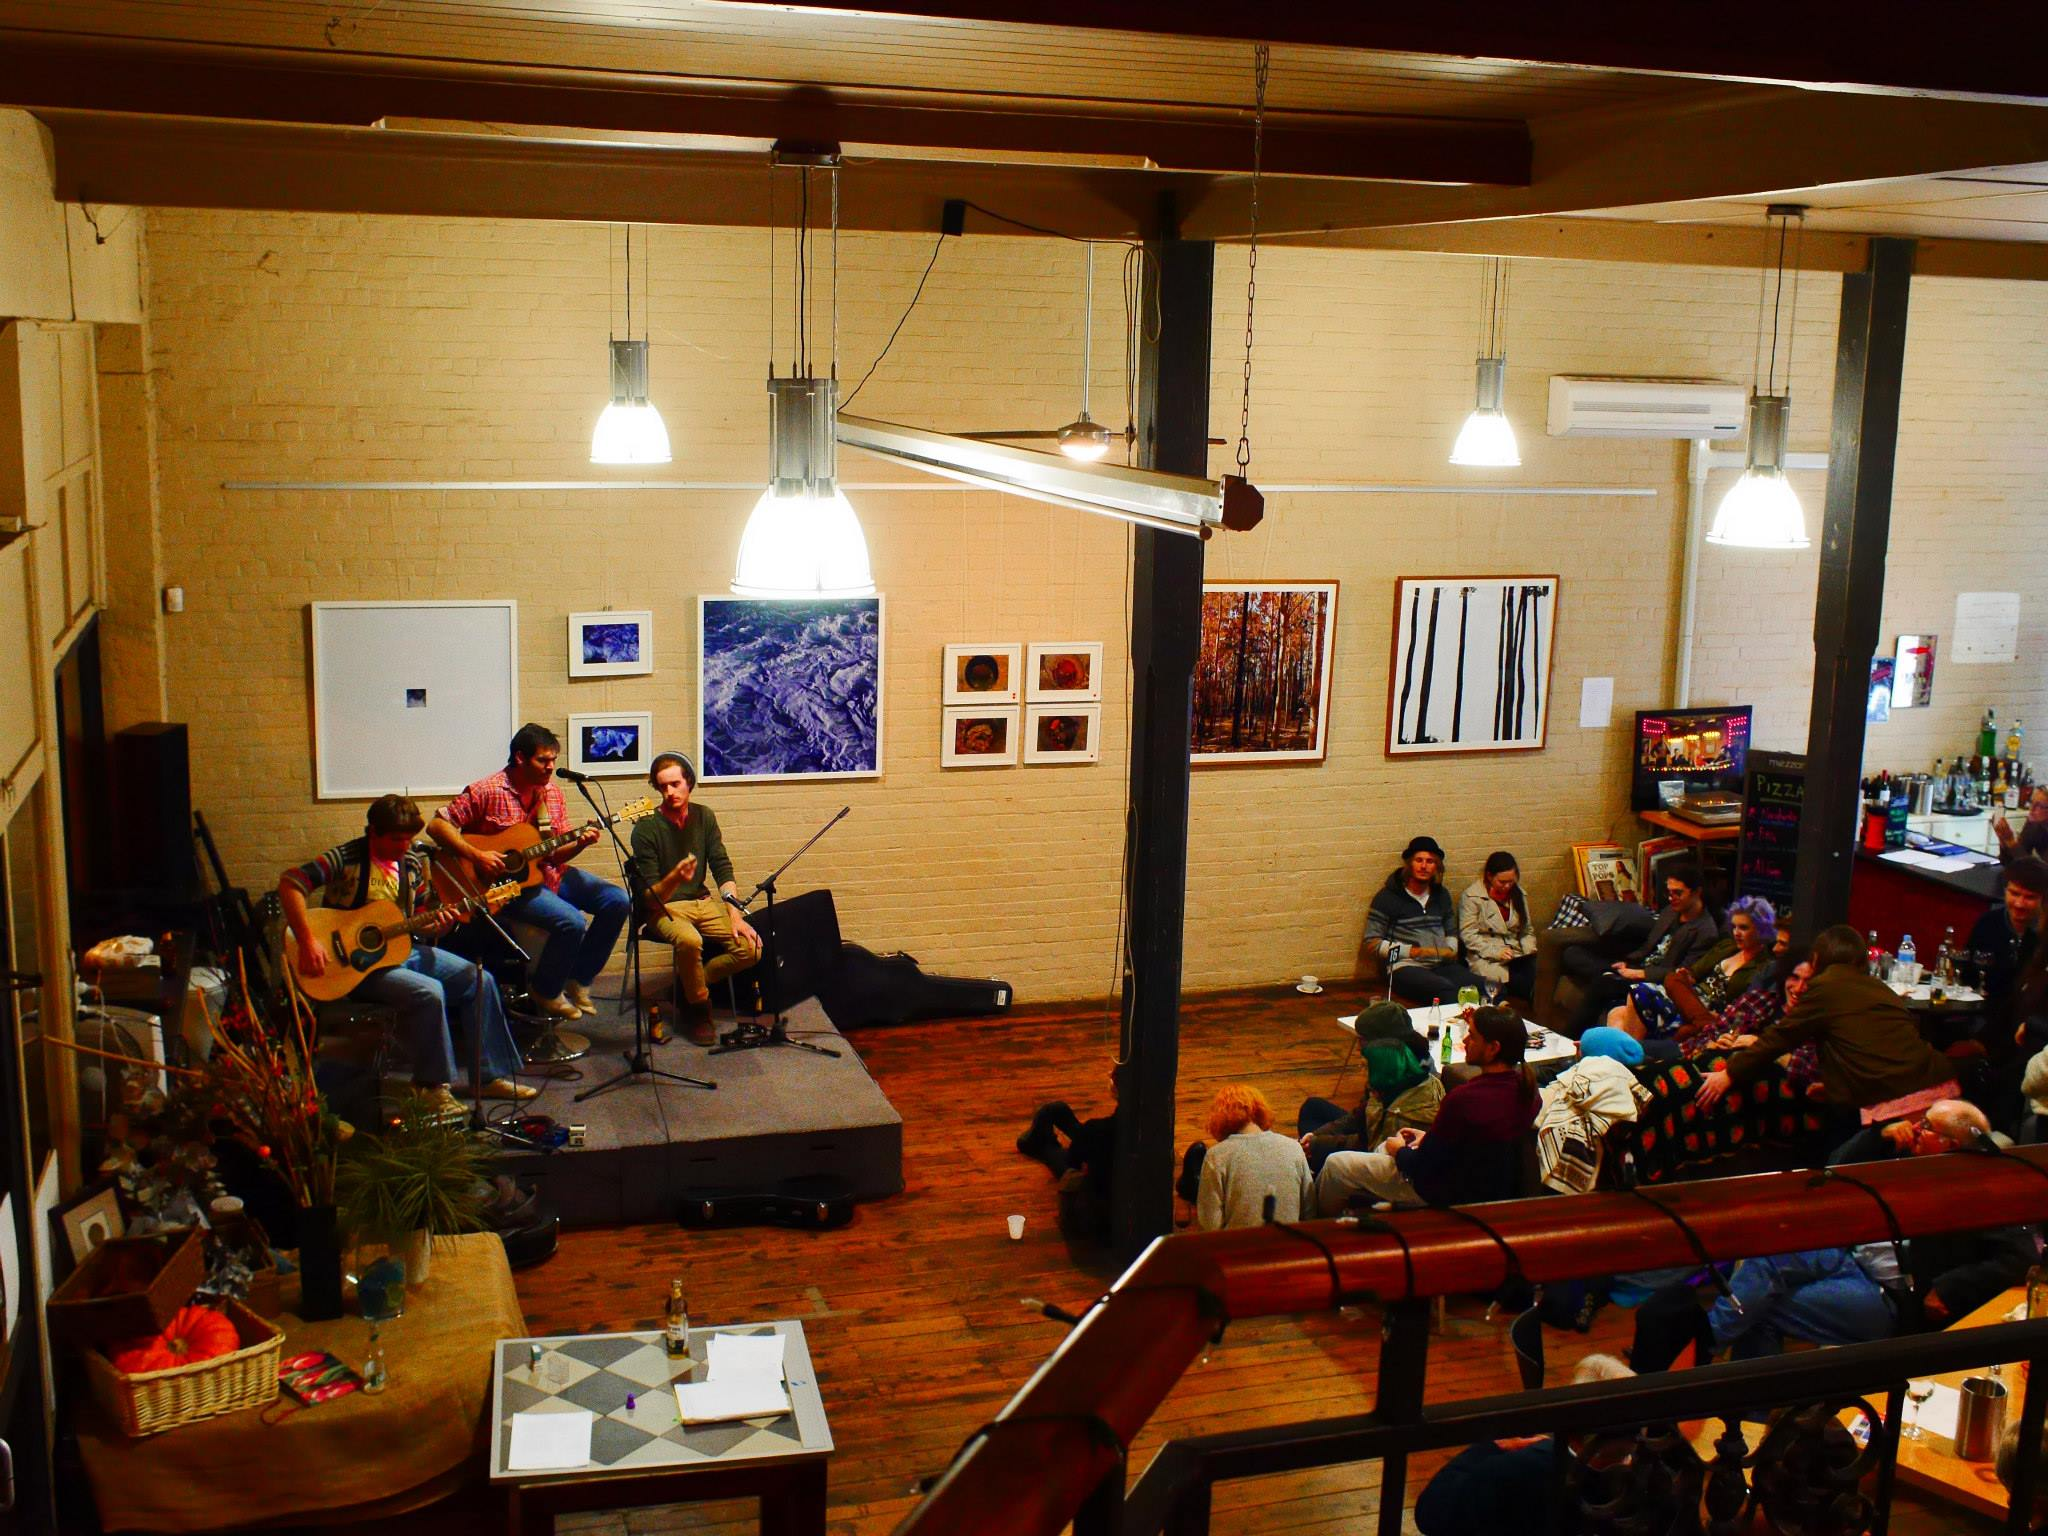 Music at Mezzanine Cafe Forbes